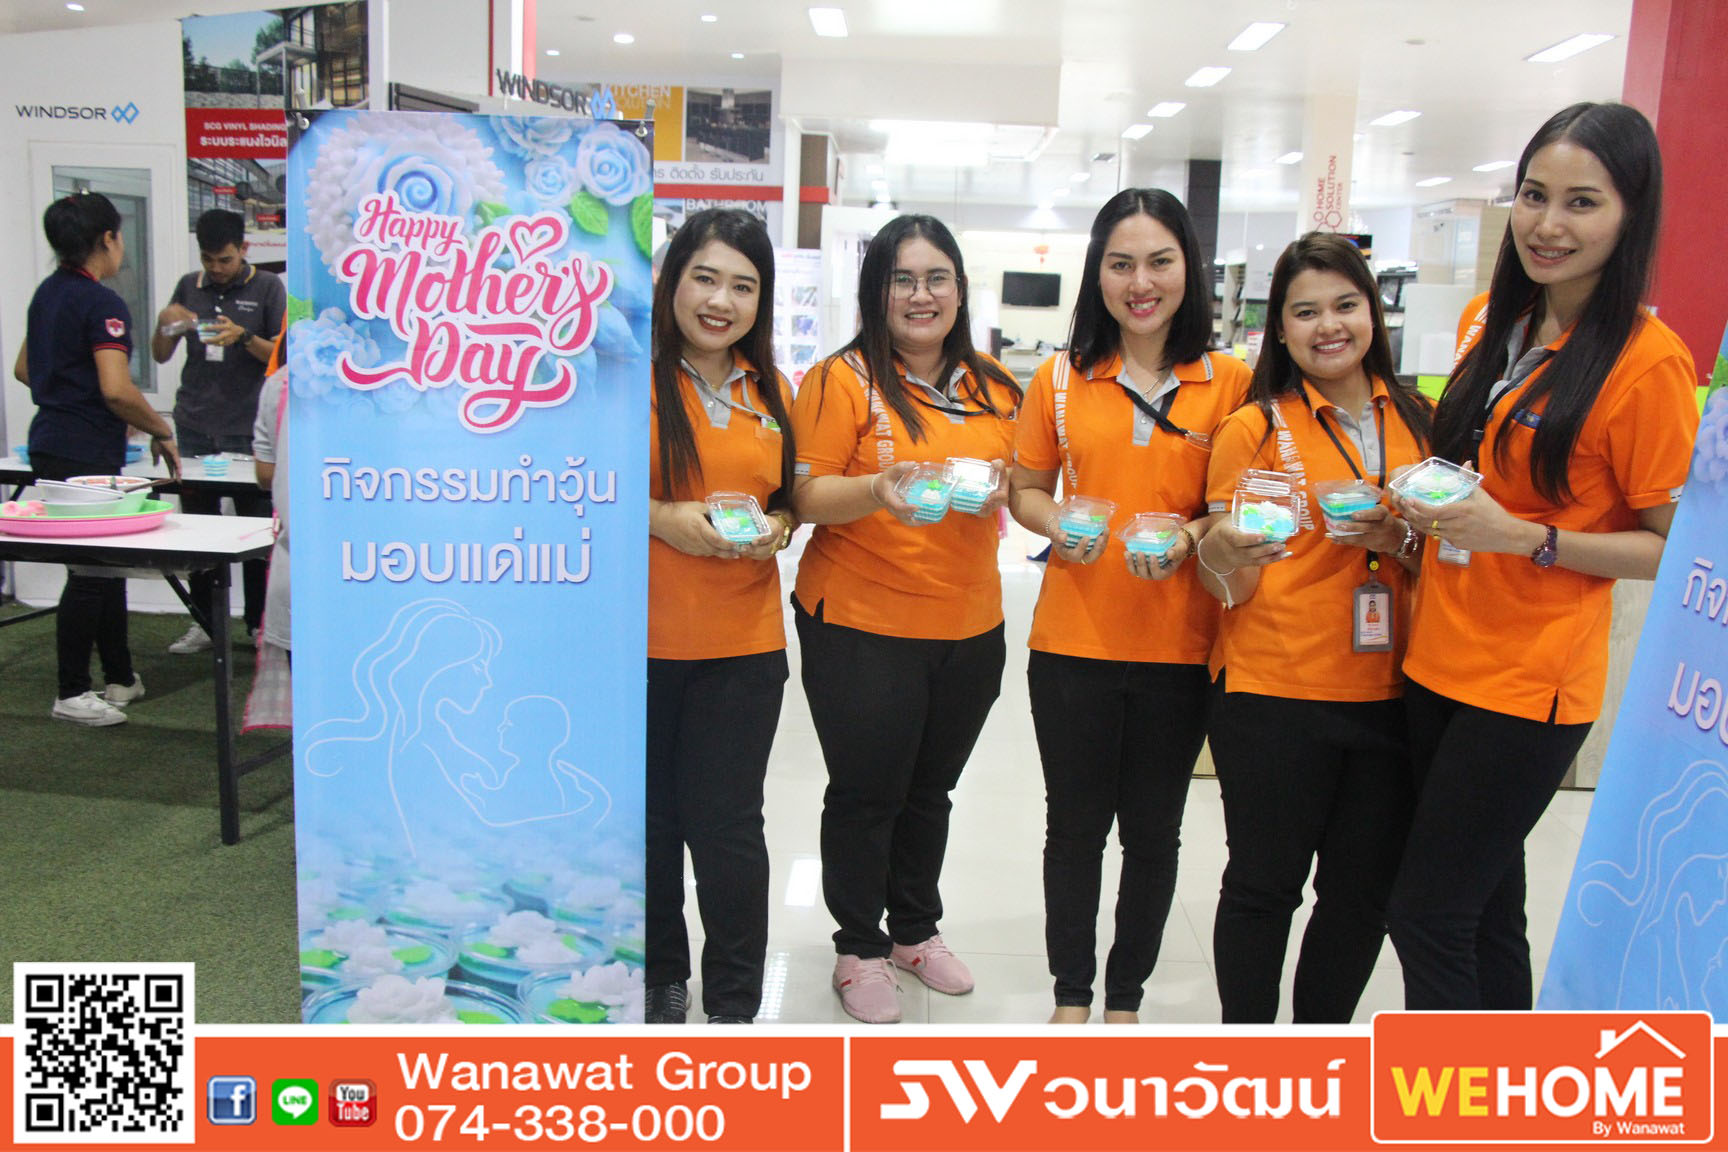 we home โครงการ Happy Mother's Day